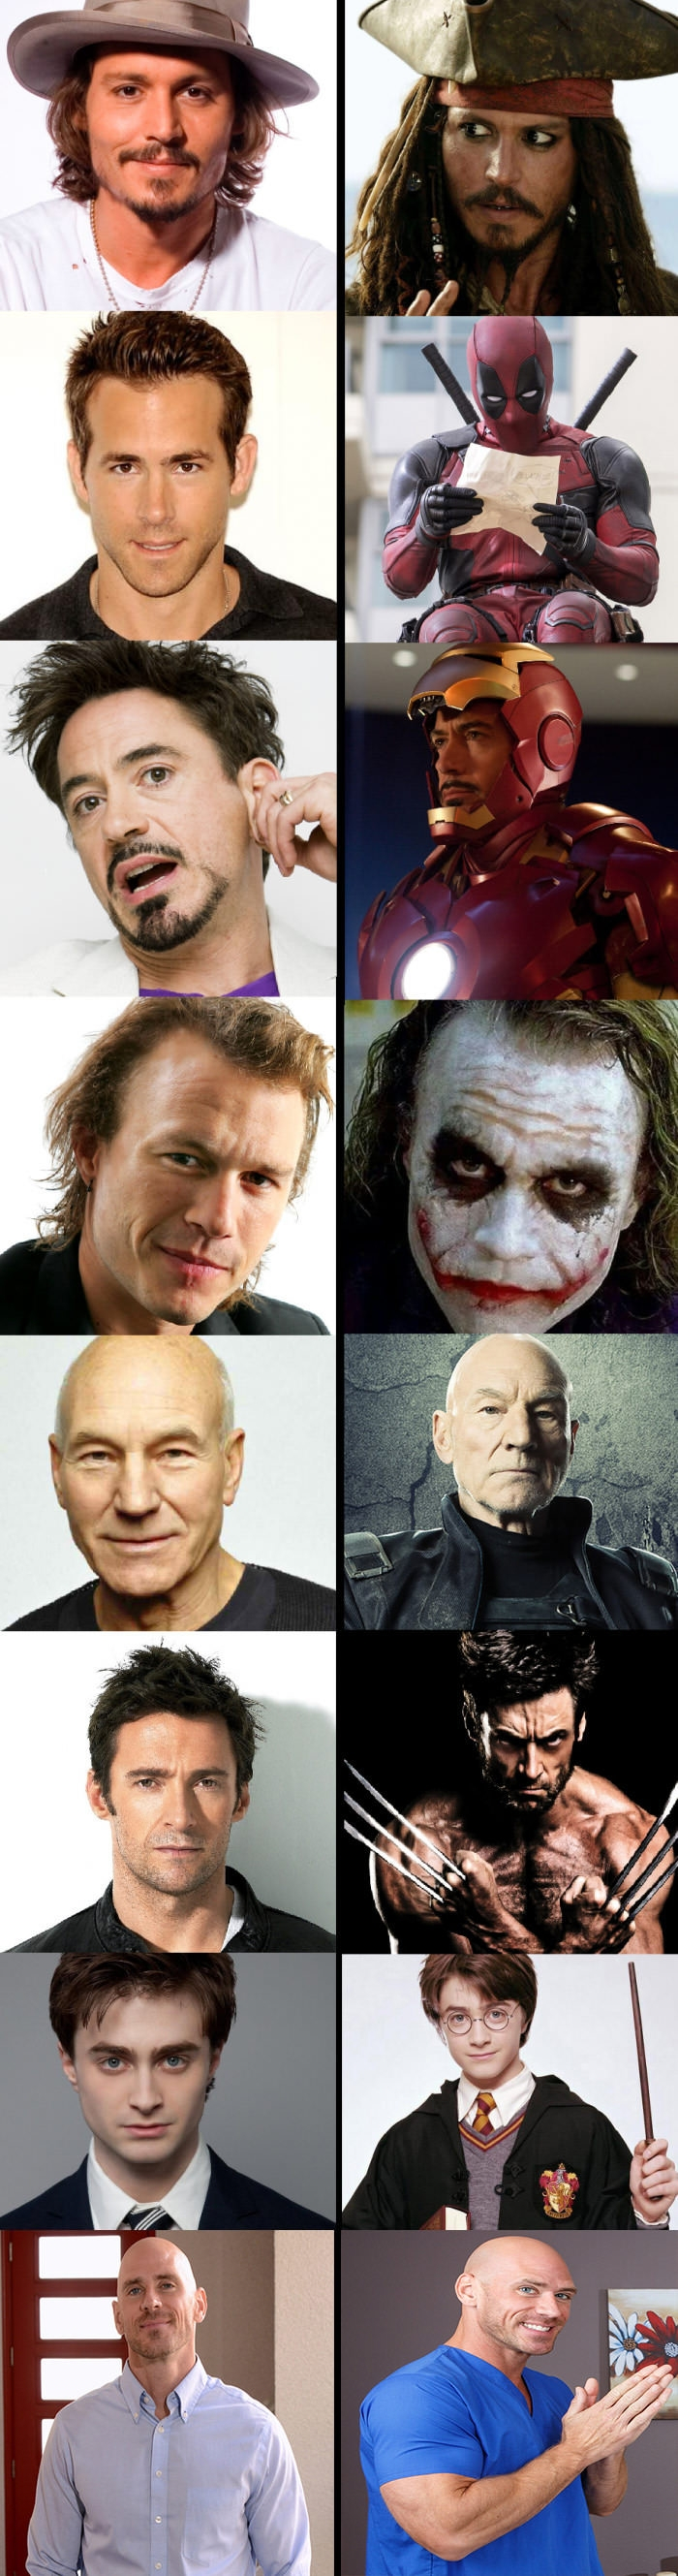 Legendary people who are born for their roles